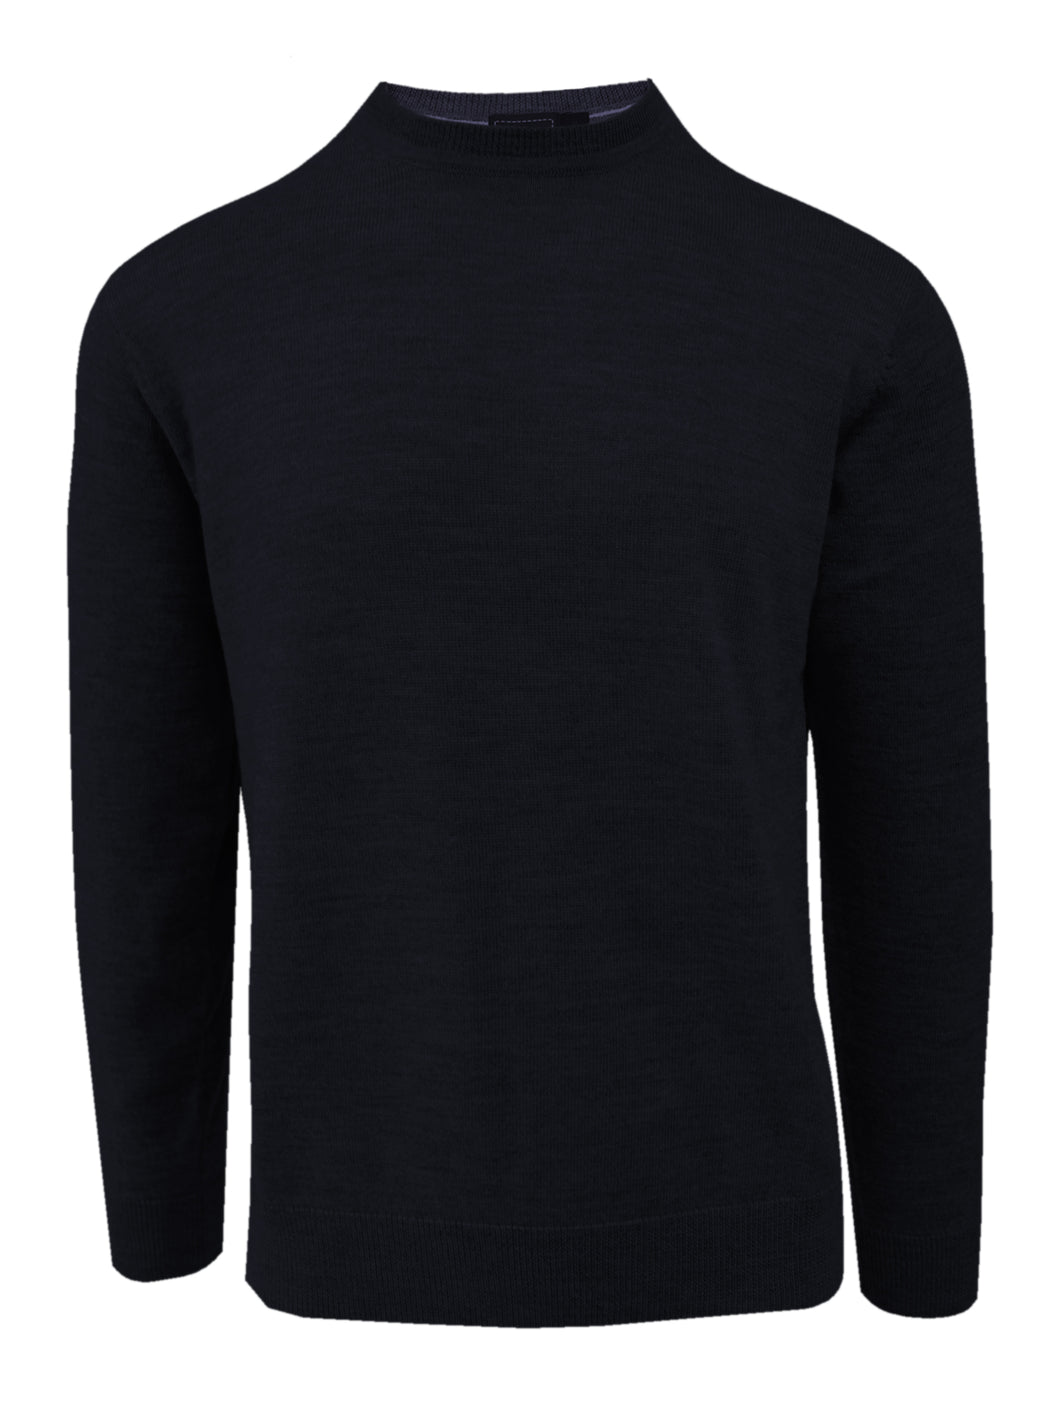 Navy Merino Wool Crew Neck Sweater